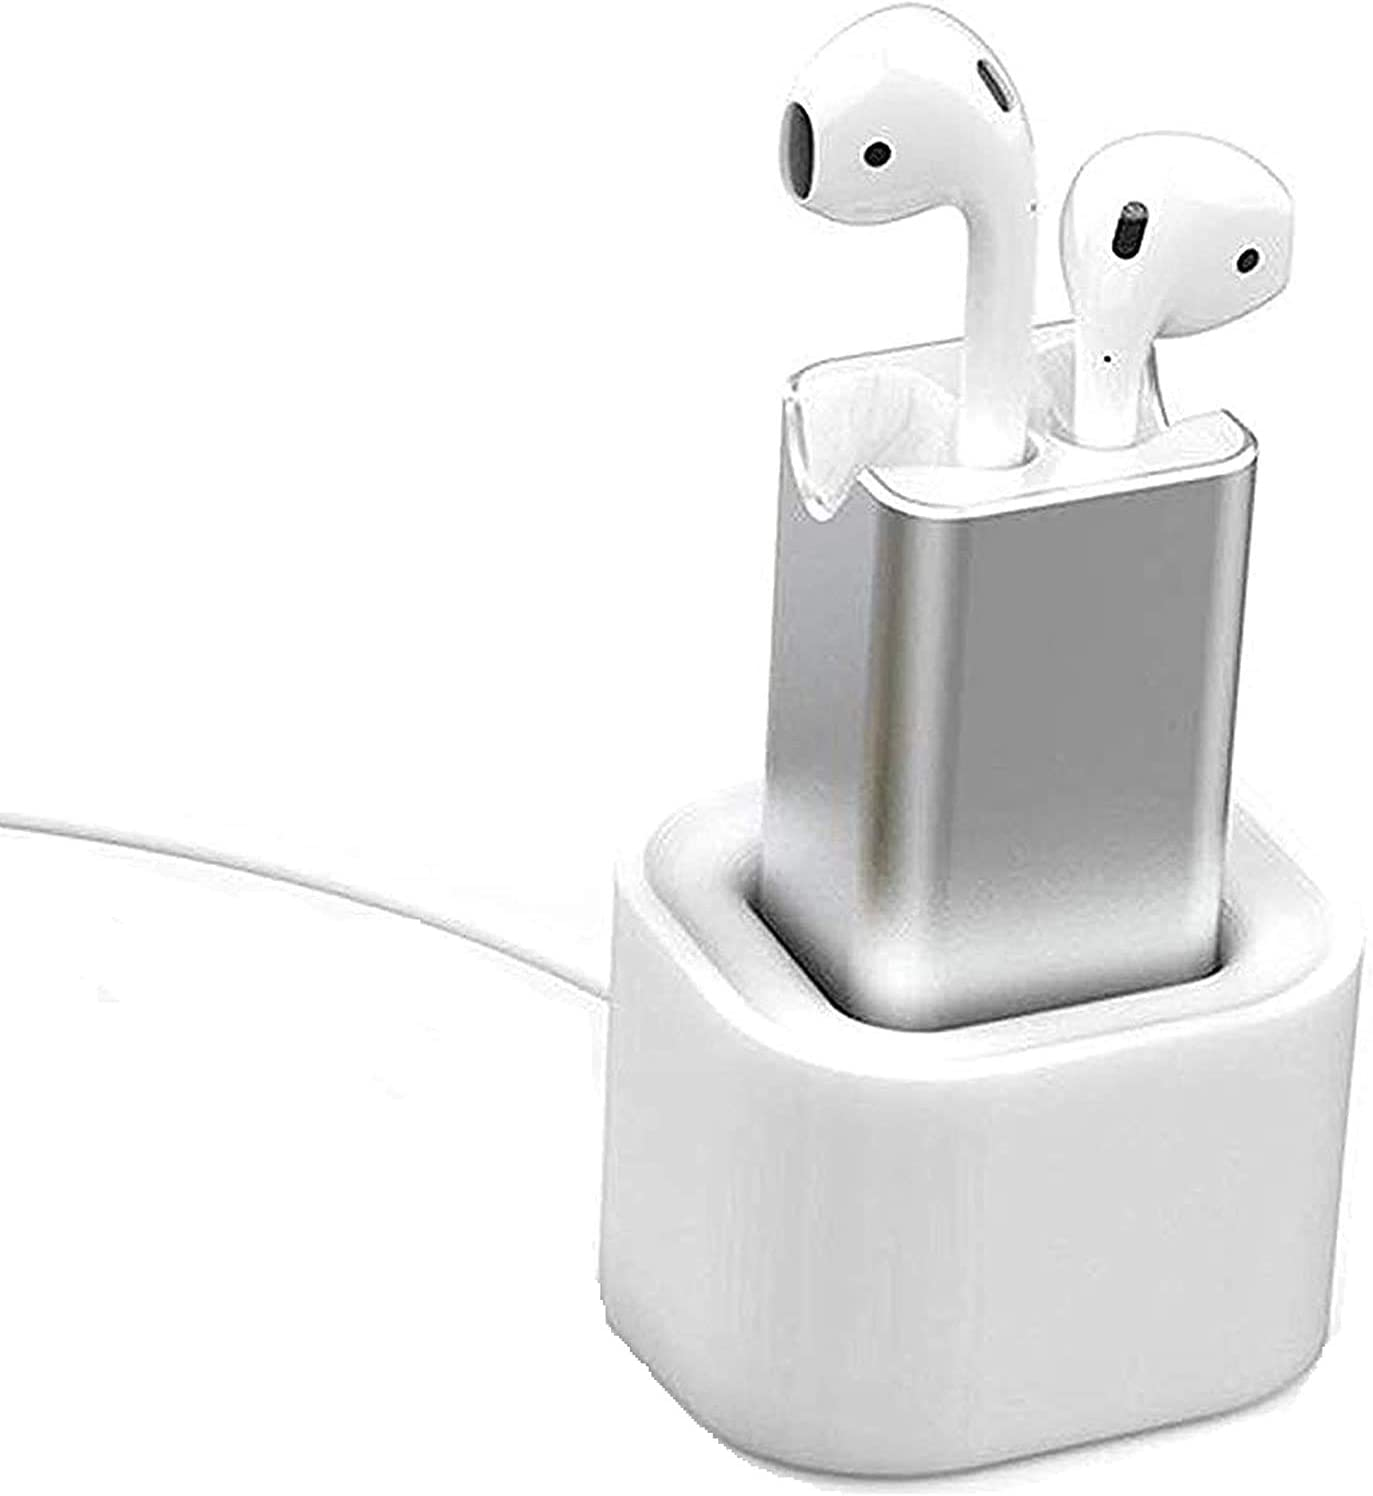 POWVAN 15 Minutes Fast Charger Adapter Compatible with Airpod 1st & 2nd for Air Pods case Replacement Charger with Desktop Stand Holder